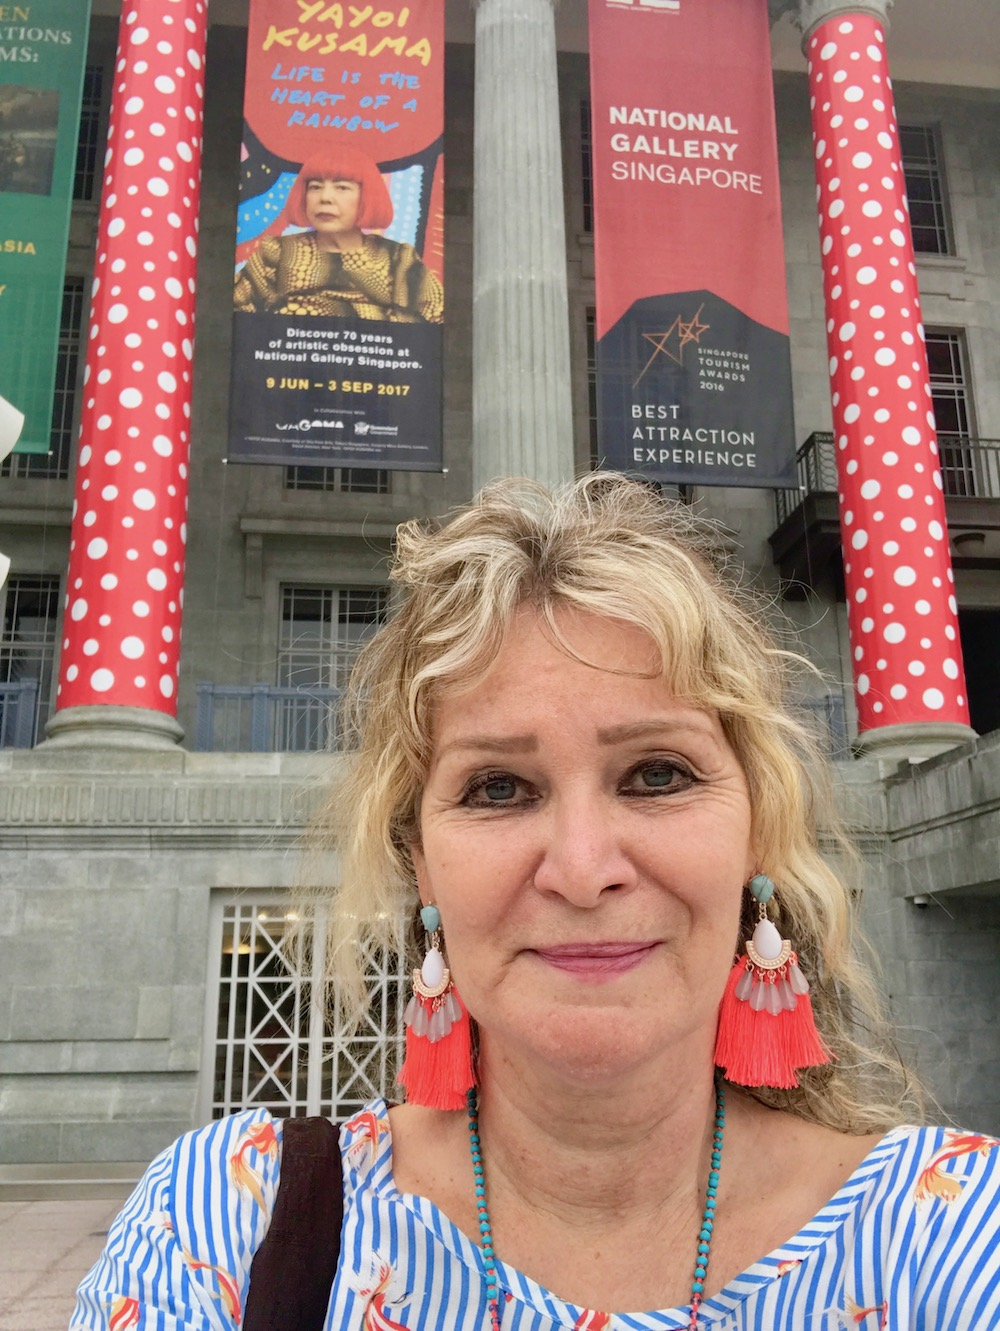 Woman with orange earrings in front of National Gallery |curlytraveller.com